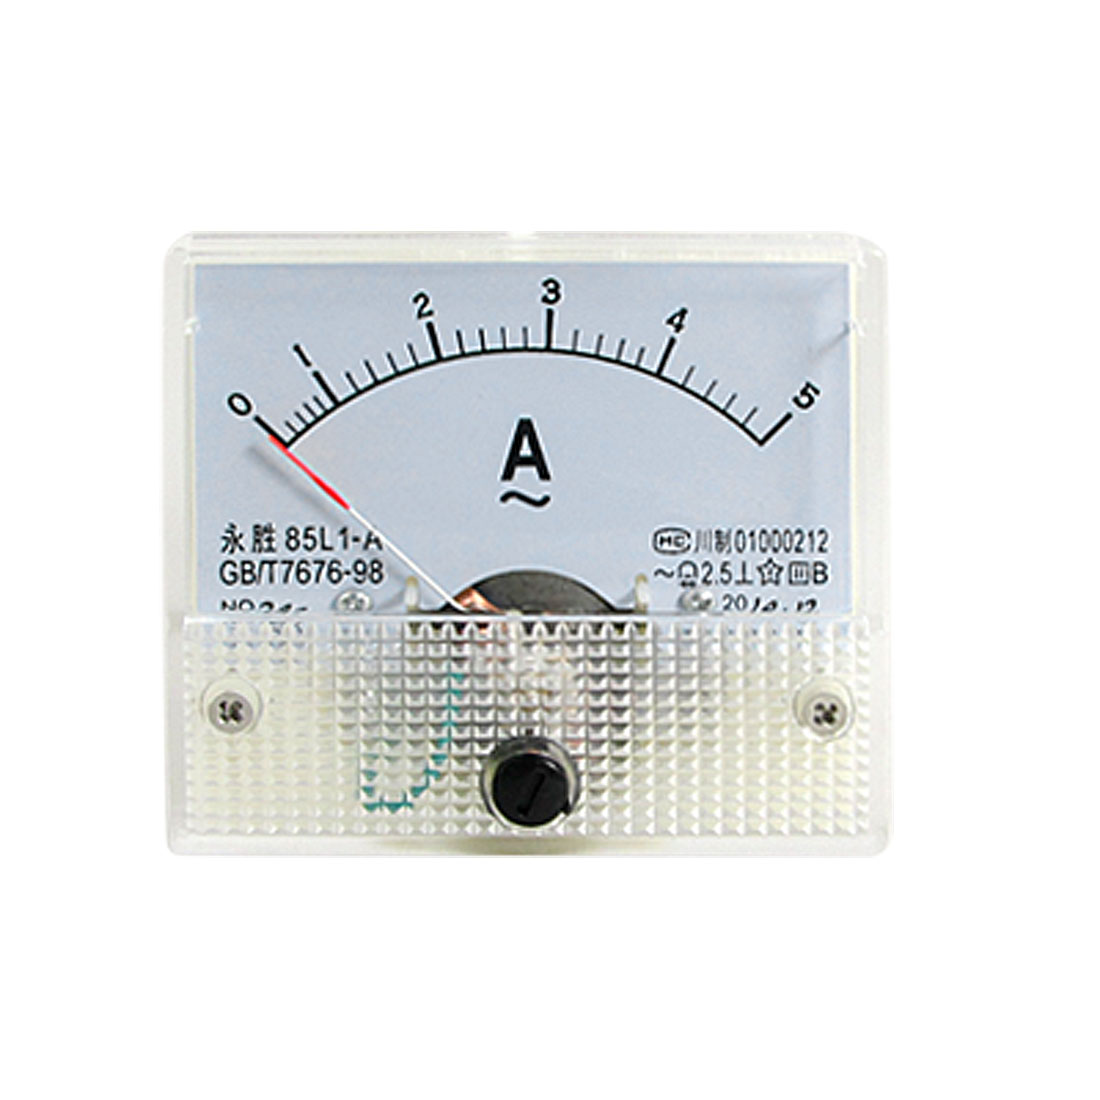 85L1-A Class 2.5 Accuracy AC 0-5A Analog Panel Ammeter